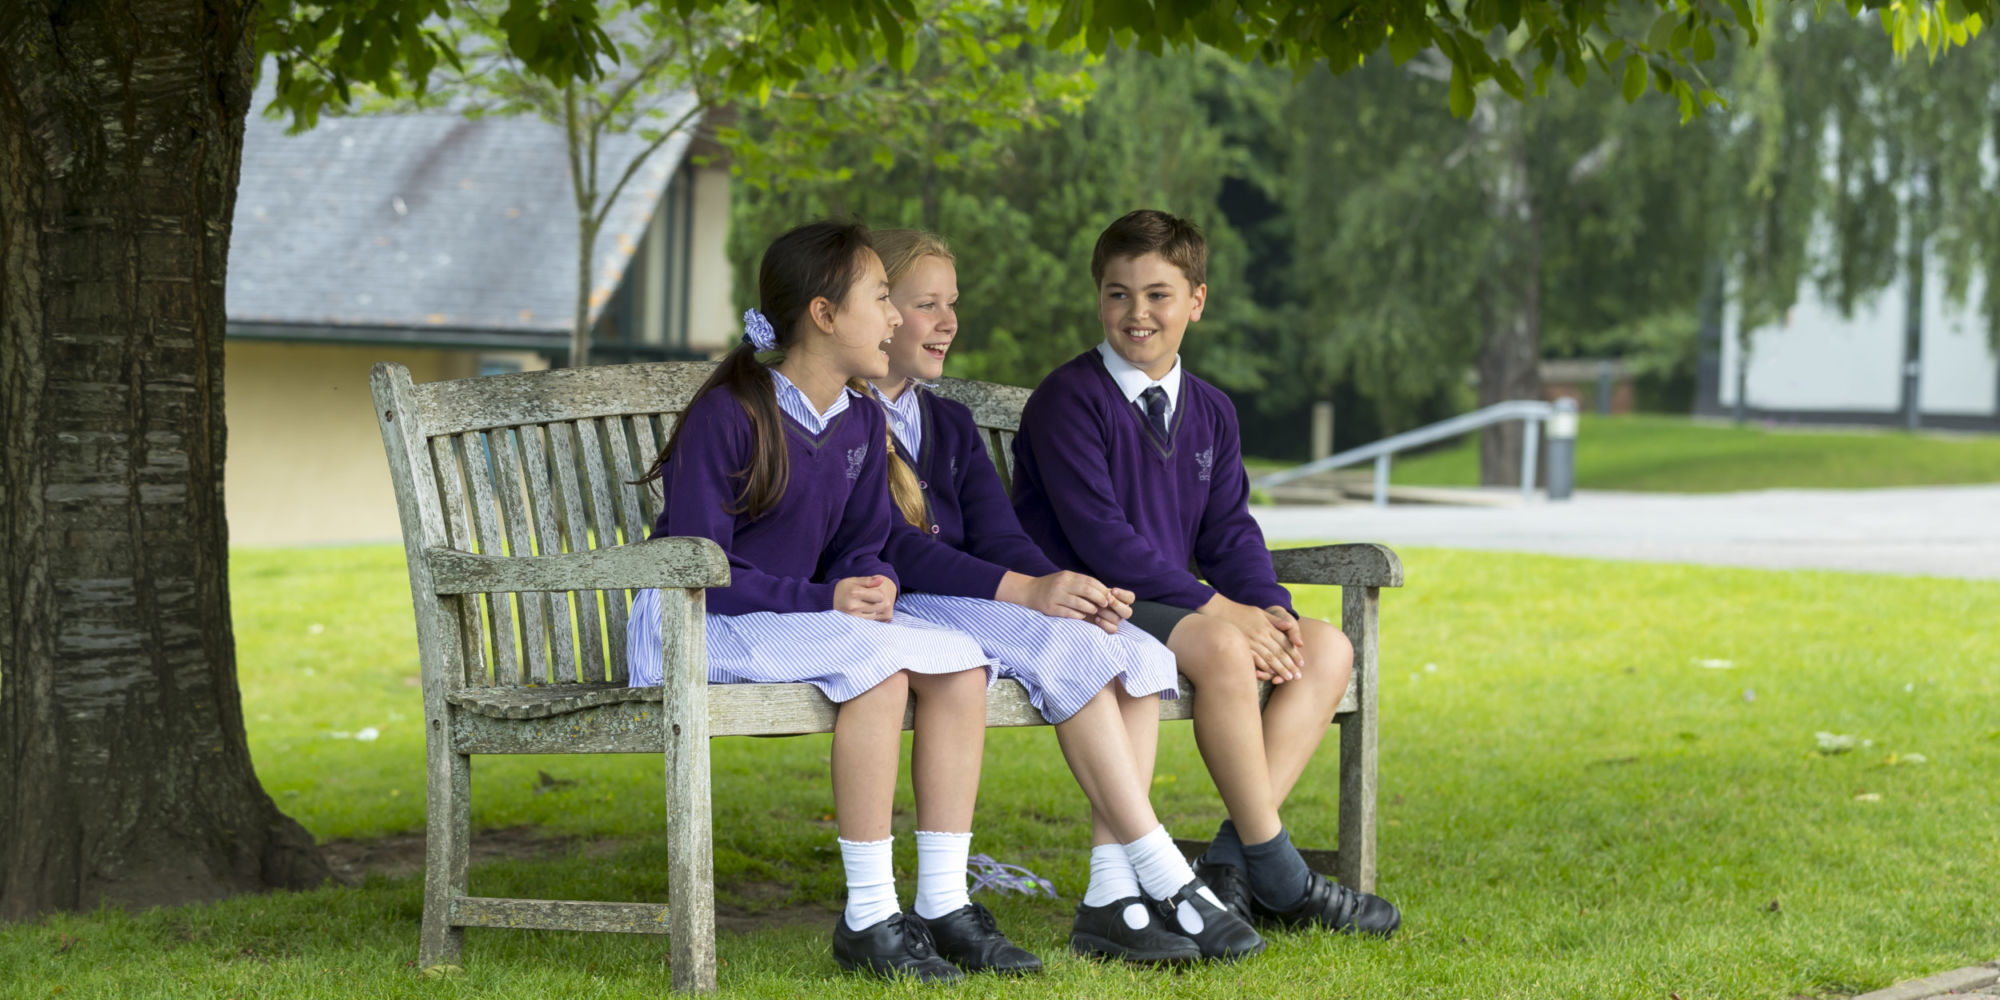 wycliffe pupils sitting on a bench outdoors